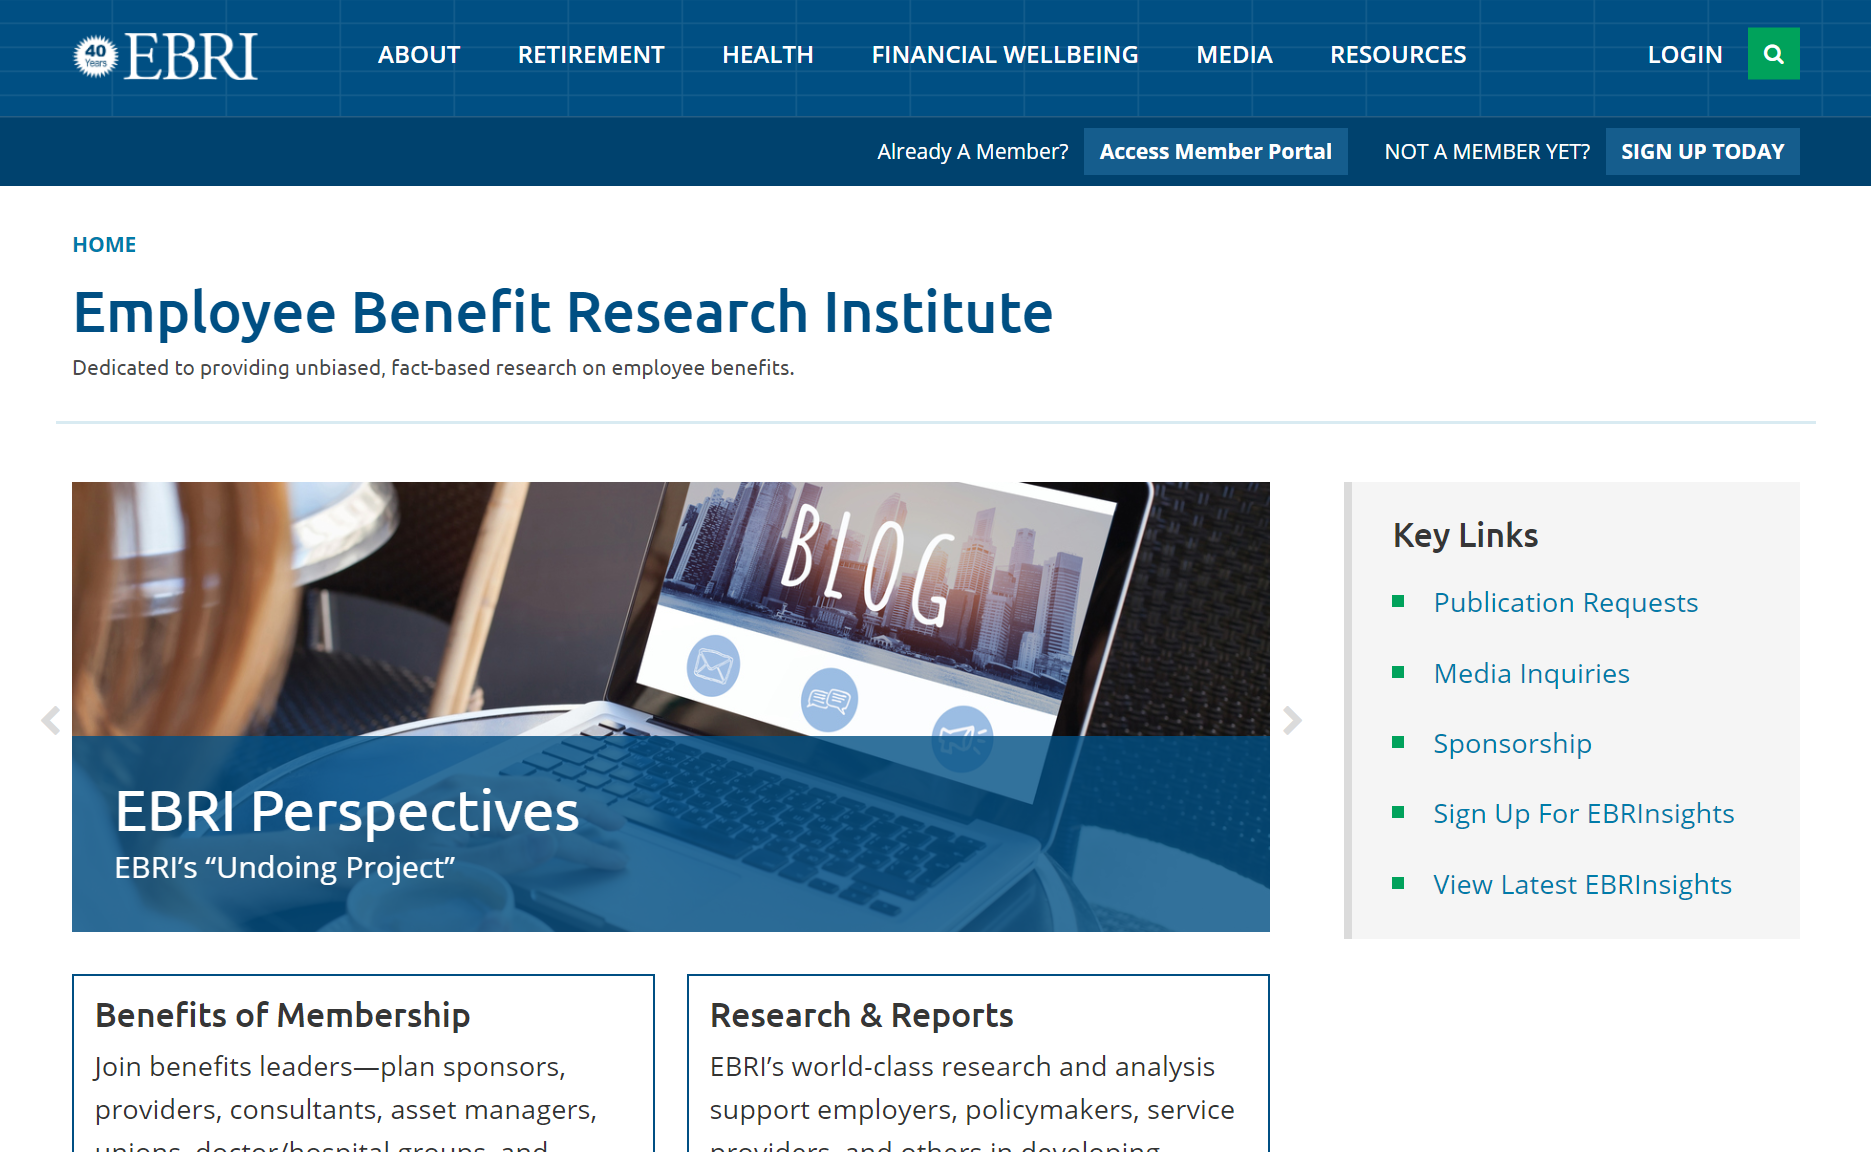 Employee Benefit Research Institute